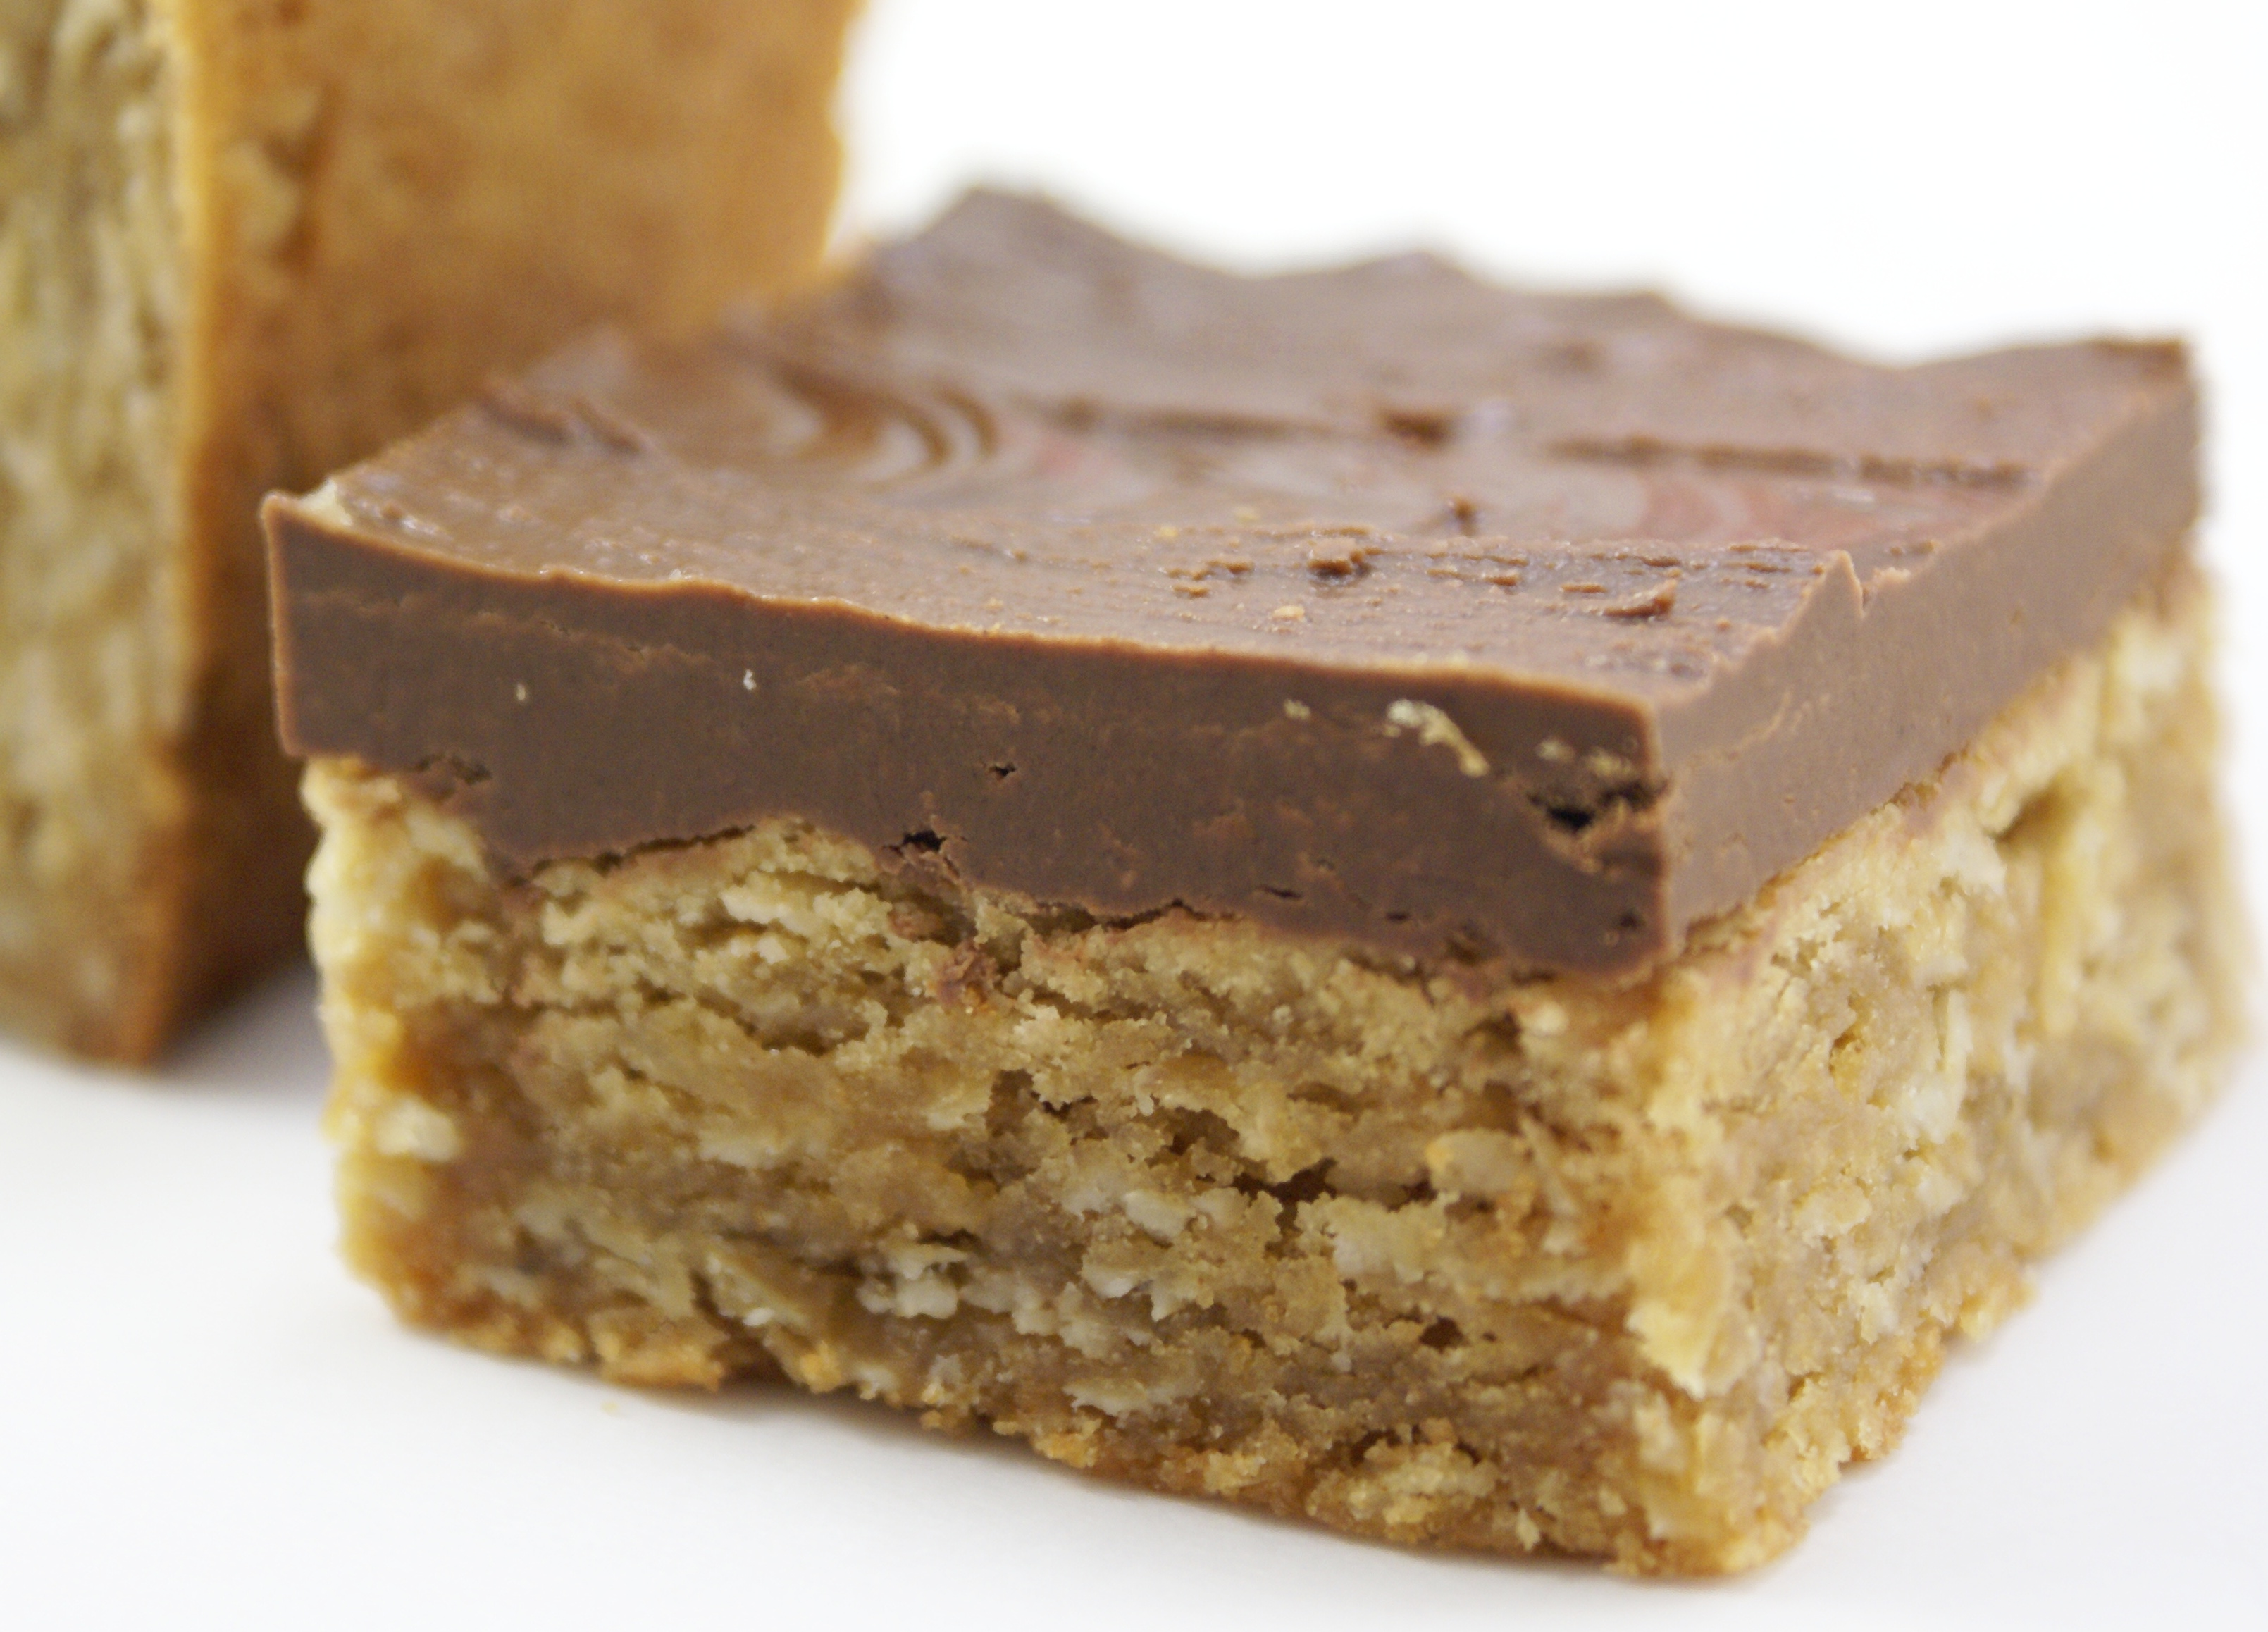 back, I think…and Oatmeal Peanut Butter Bars recipe | Choosing ...